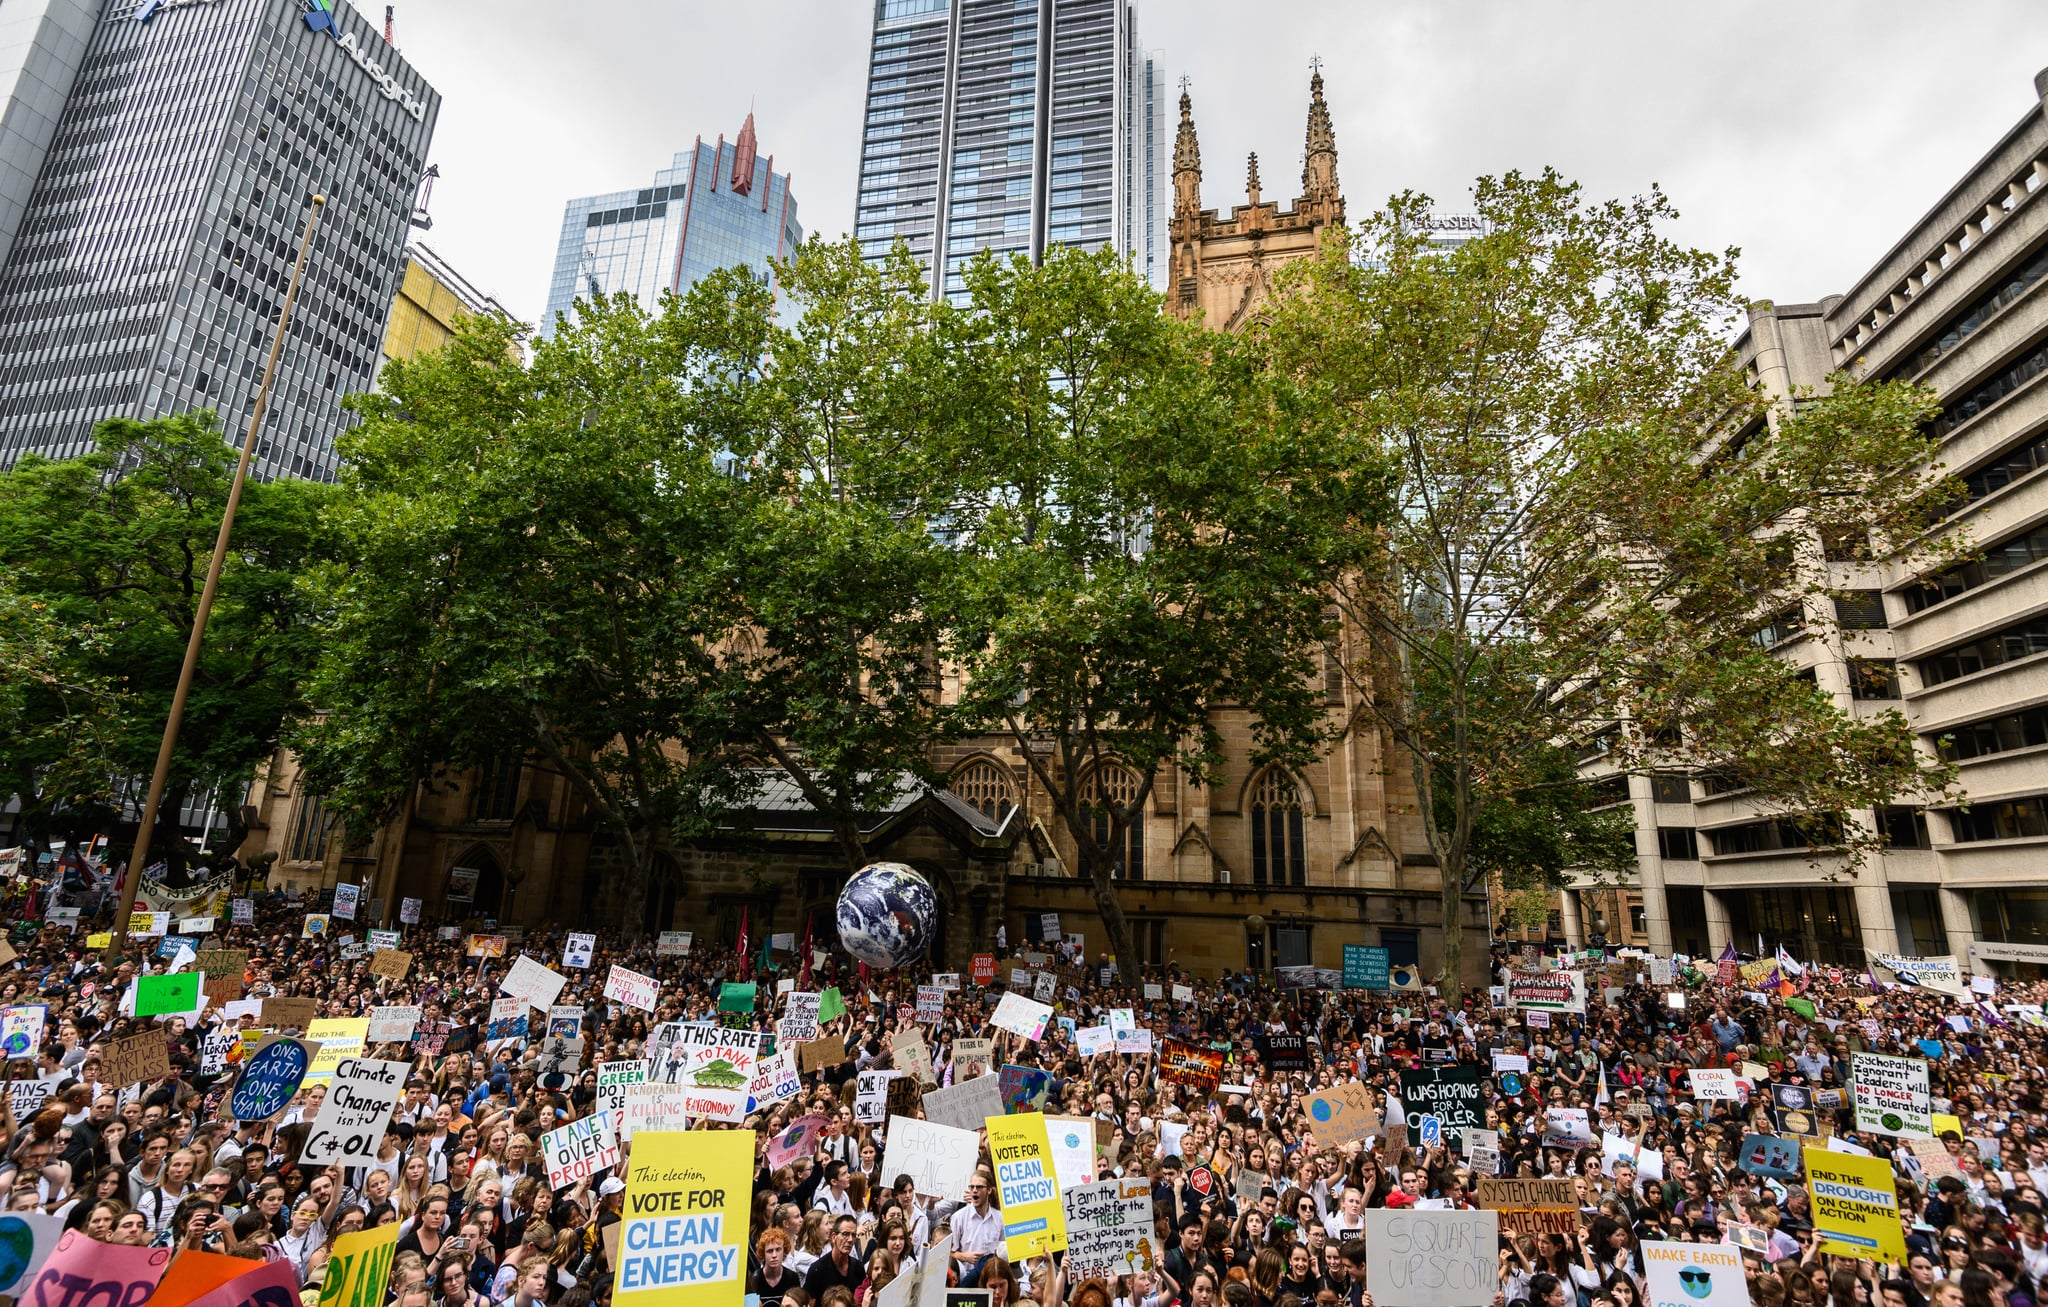 SYDNEY, AUSTRALIA - MARCH 15: Protesters during a Climate Change Awareness March on March 15, 2019 outside Sydney Town Hall, Australia. The protests are part of a global climate strike, urging politicians to take urgent action on climate change.  (Photo by James Gourley/Getty Images)